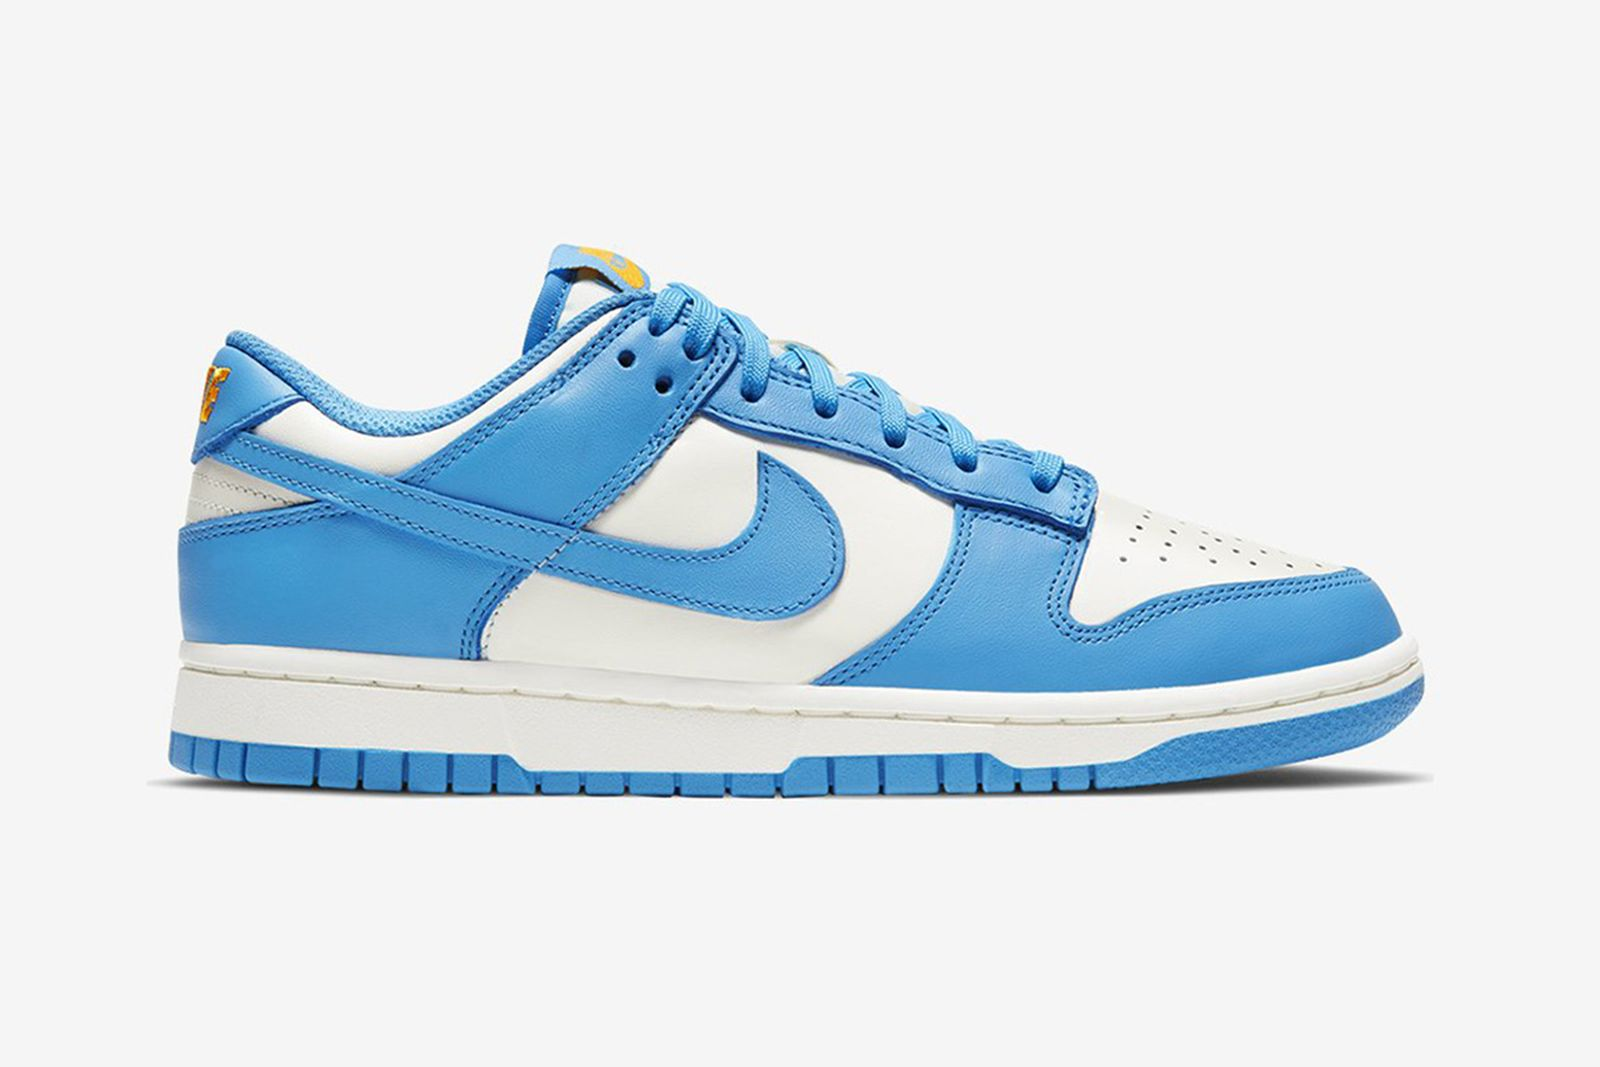 nike-dunk-low-ucla-release-date-price-01